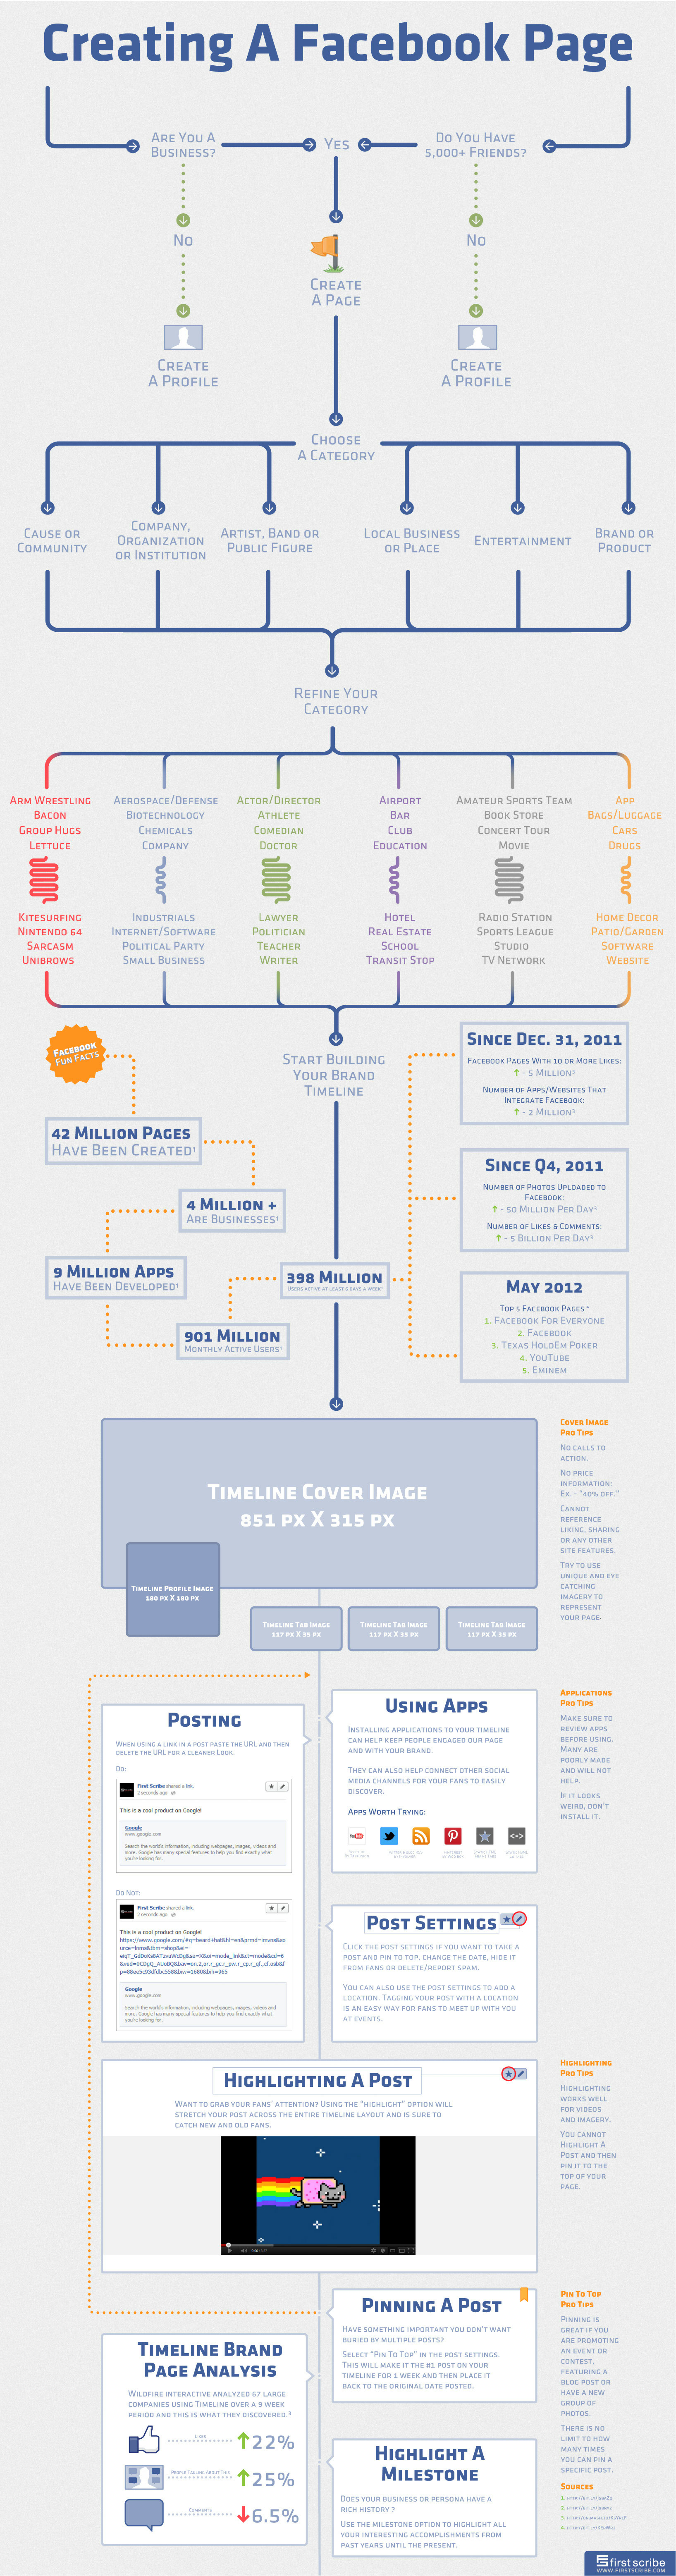 Creating-A-Facebook-Page-infographic